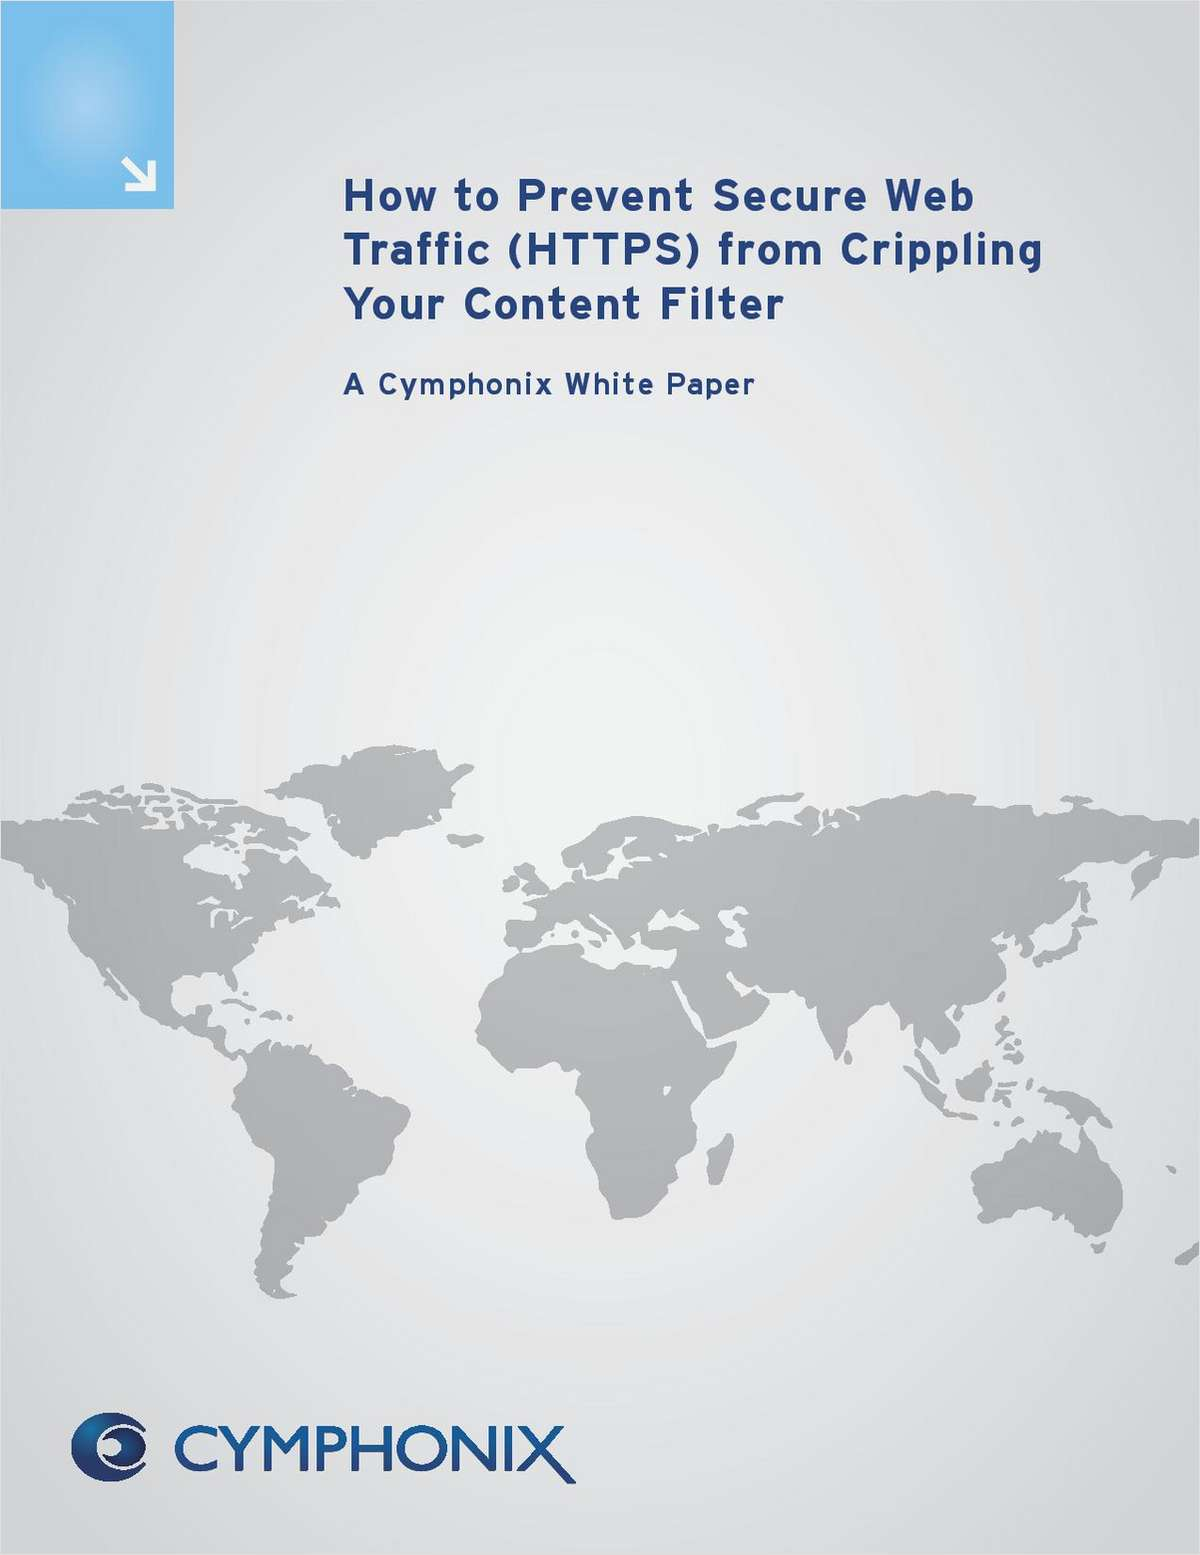 How to Prevent HTTPS Traffic from Crippling Your Content Filter